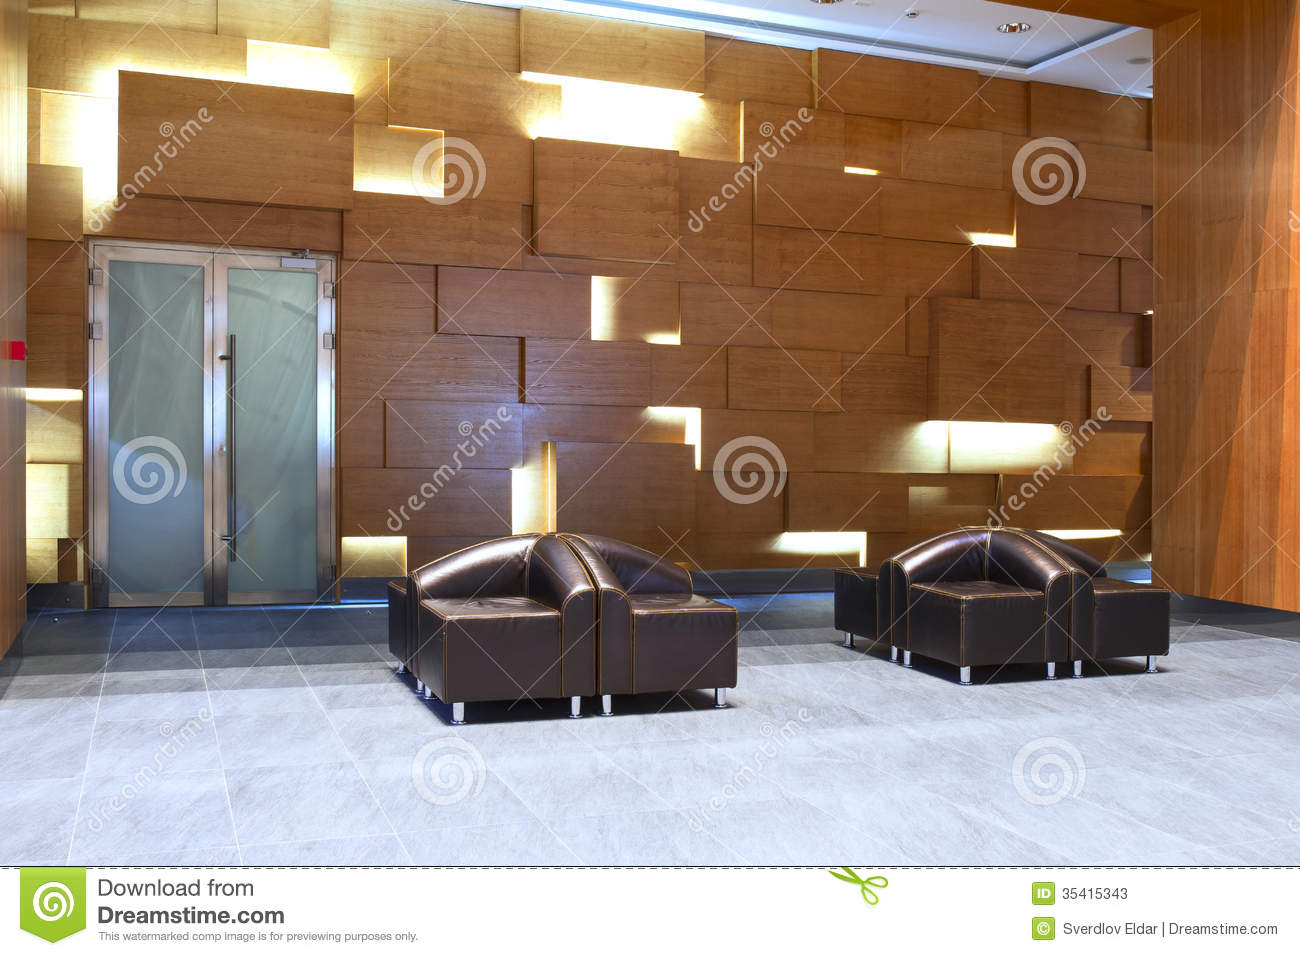 Lobby In The Business Centre Stock Image Image 35415343 : lobby business centre two dark leather armchairs wooden wall granite floor 35415343 from www.dreamstime.com size 1300 x 956 jpeg 137kB